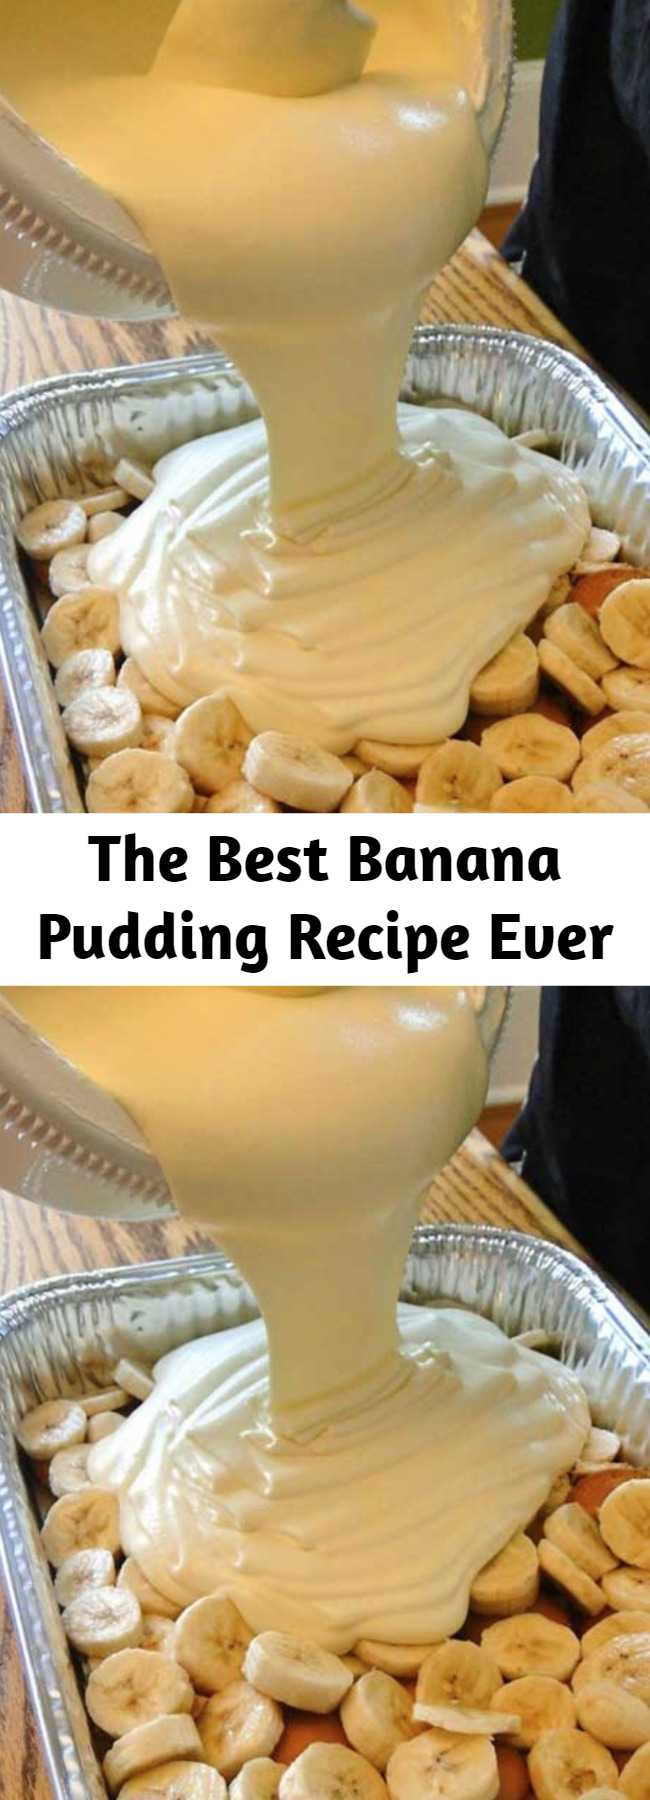 The Best Banana Pudding Recipe Ever - This recipe makes the best banana pudding I have ever tasted. And I'll bet it's the best banana pudding you've ever tasted, too.